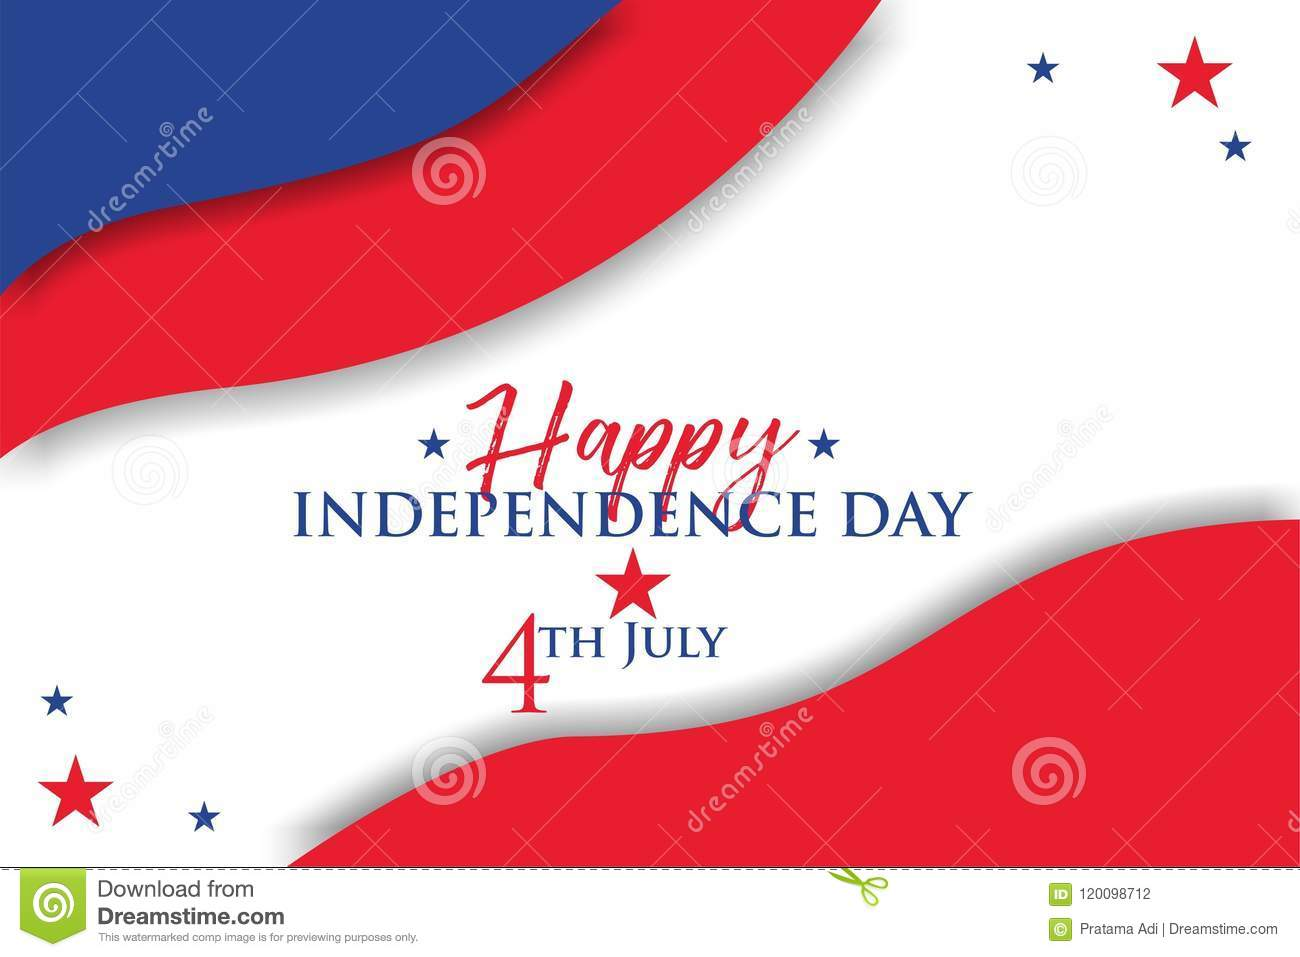 Happy Independence Day 4th July 2018 Stock Vector Illustration Of